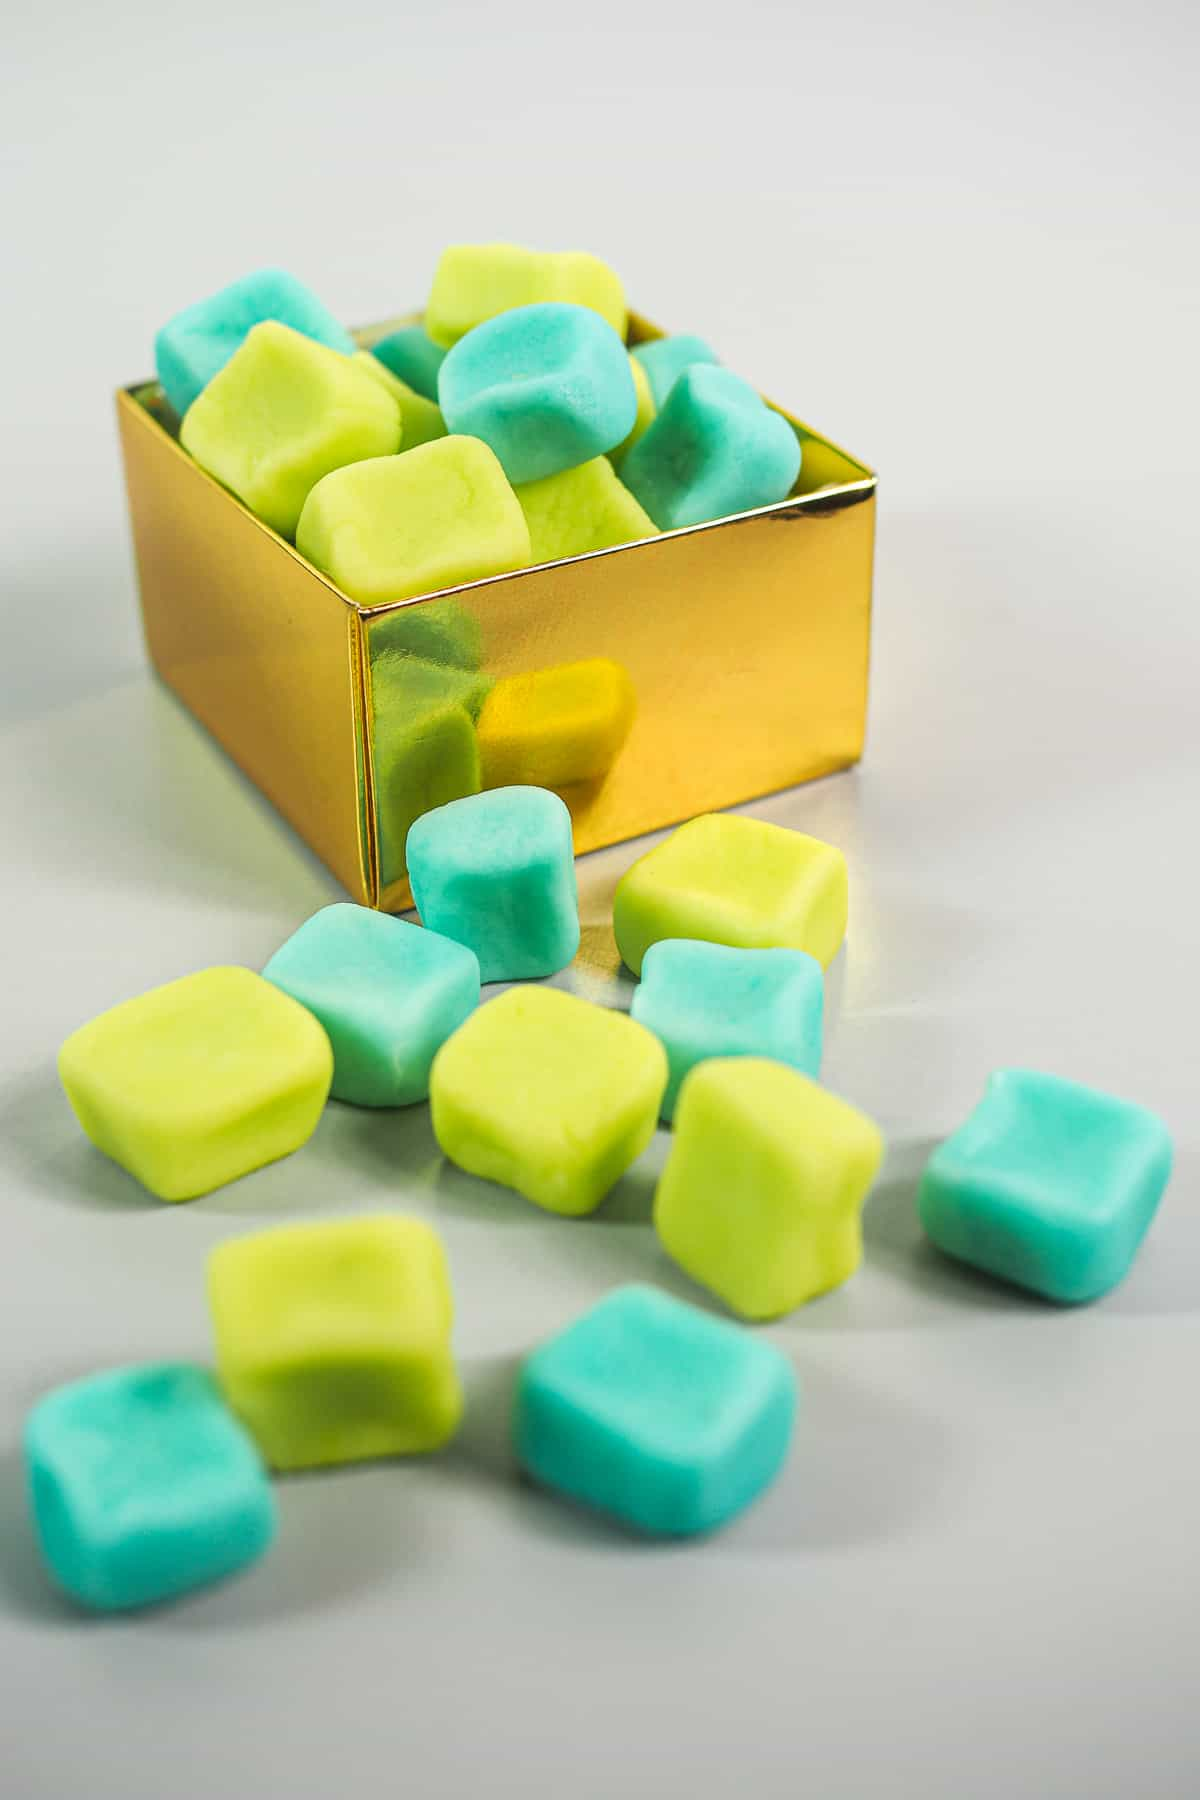 A gold box of blue and green square candies, with some candies outside the box.